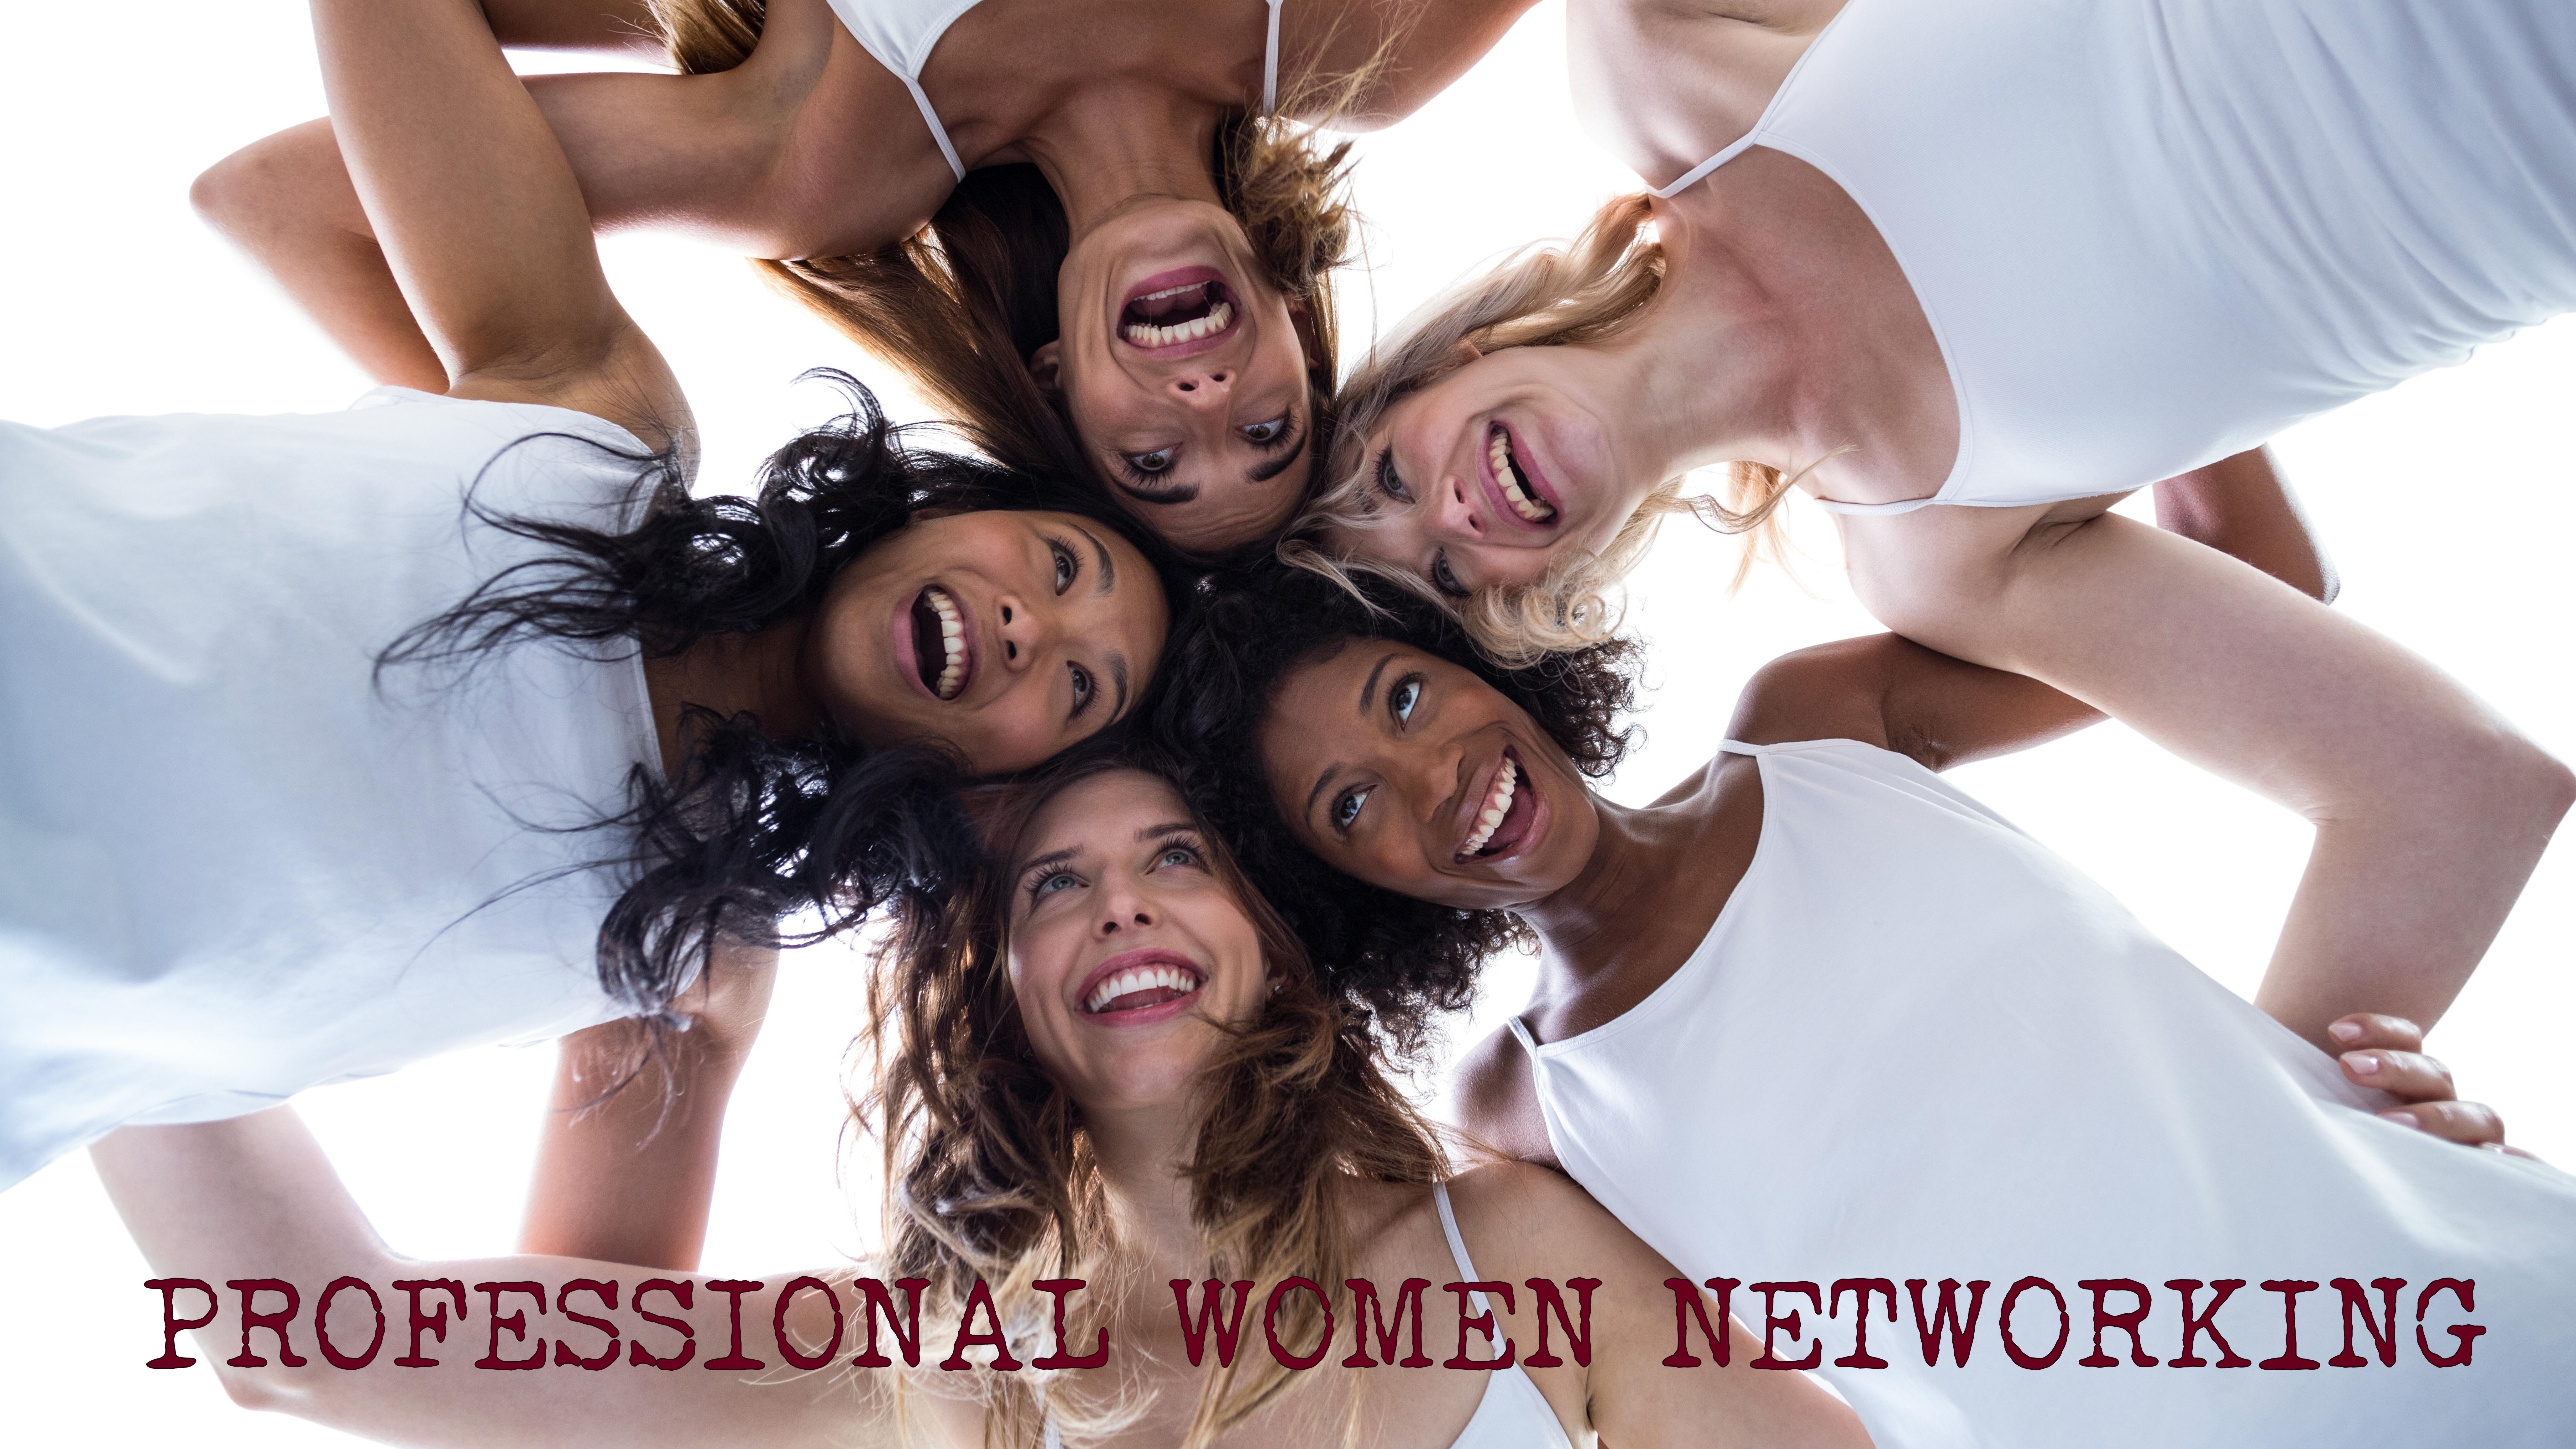 Professional Women Networking